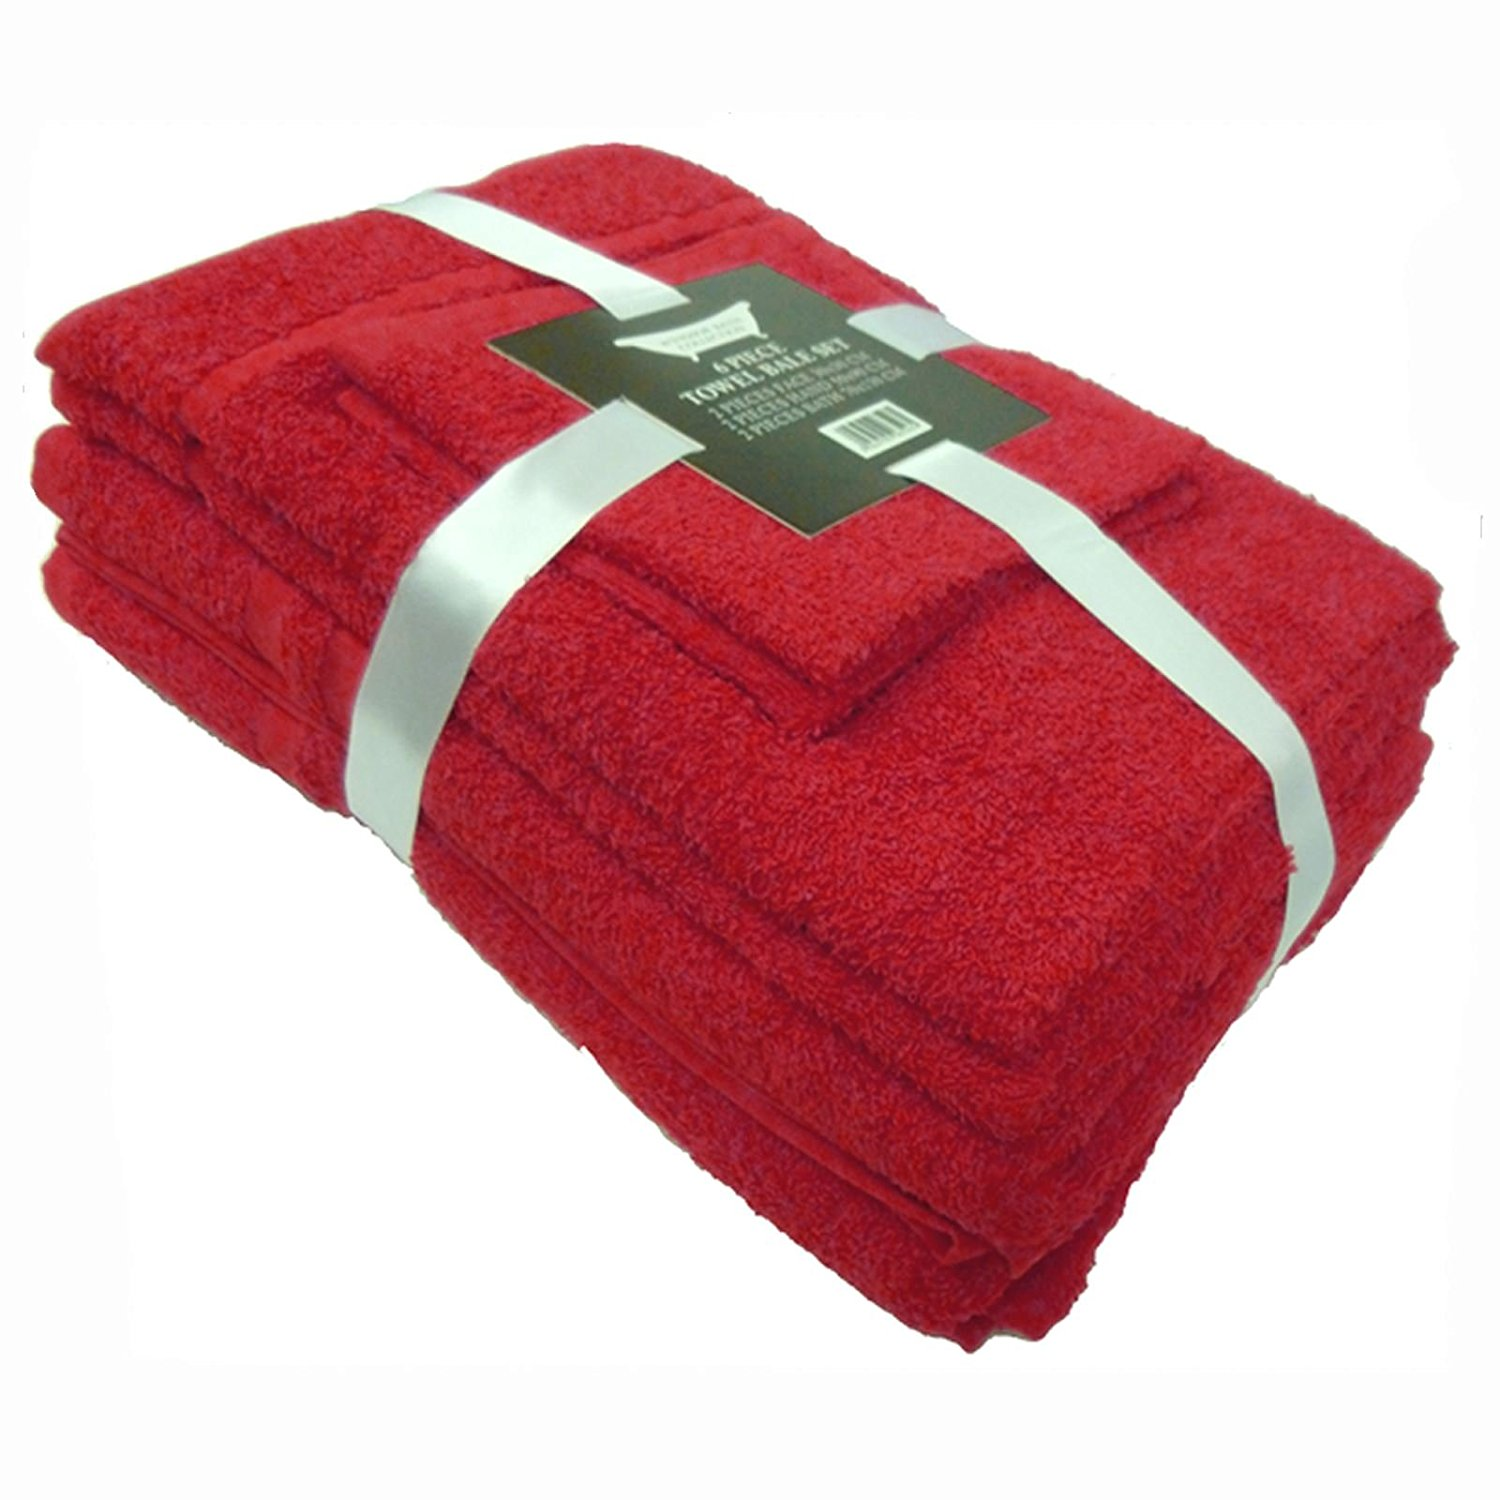 Towel Bale 6 piece (2 face, 2 hand, 2 bath) 450gsm 100% Cotton - Dark Red